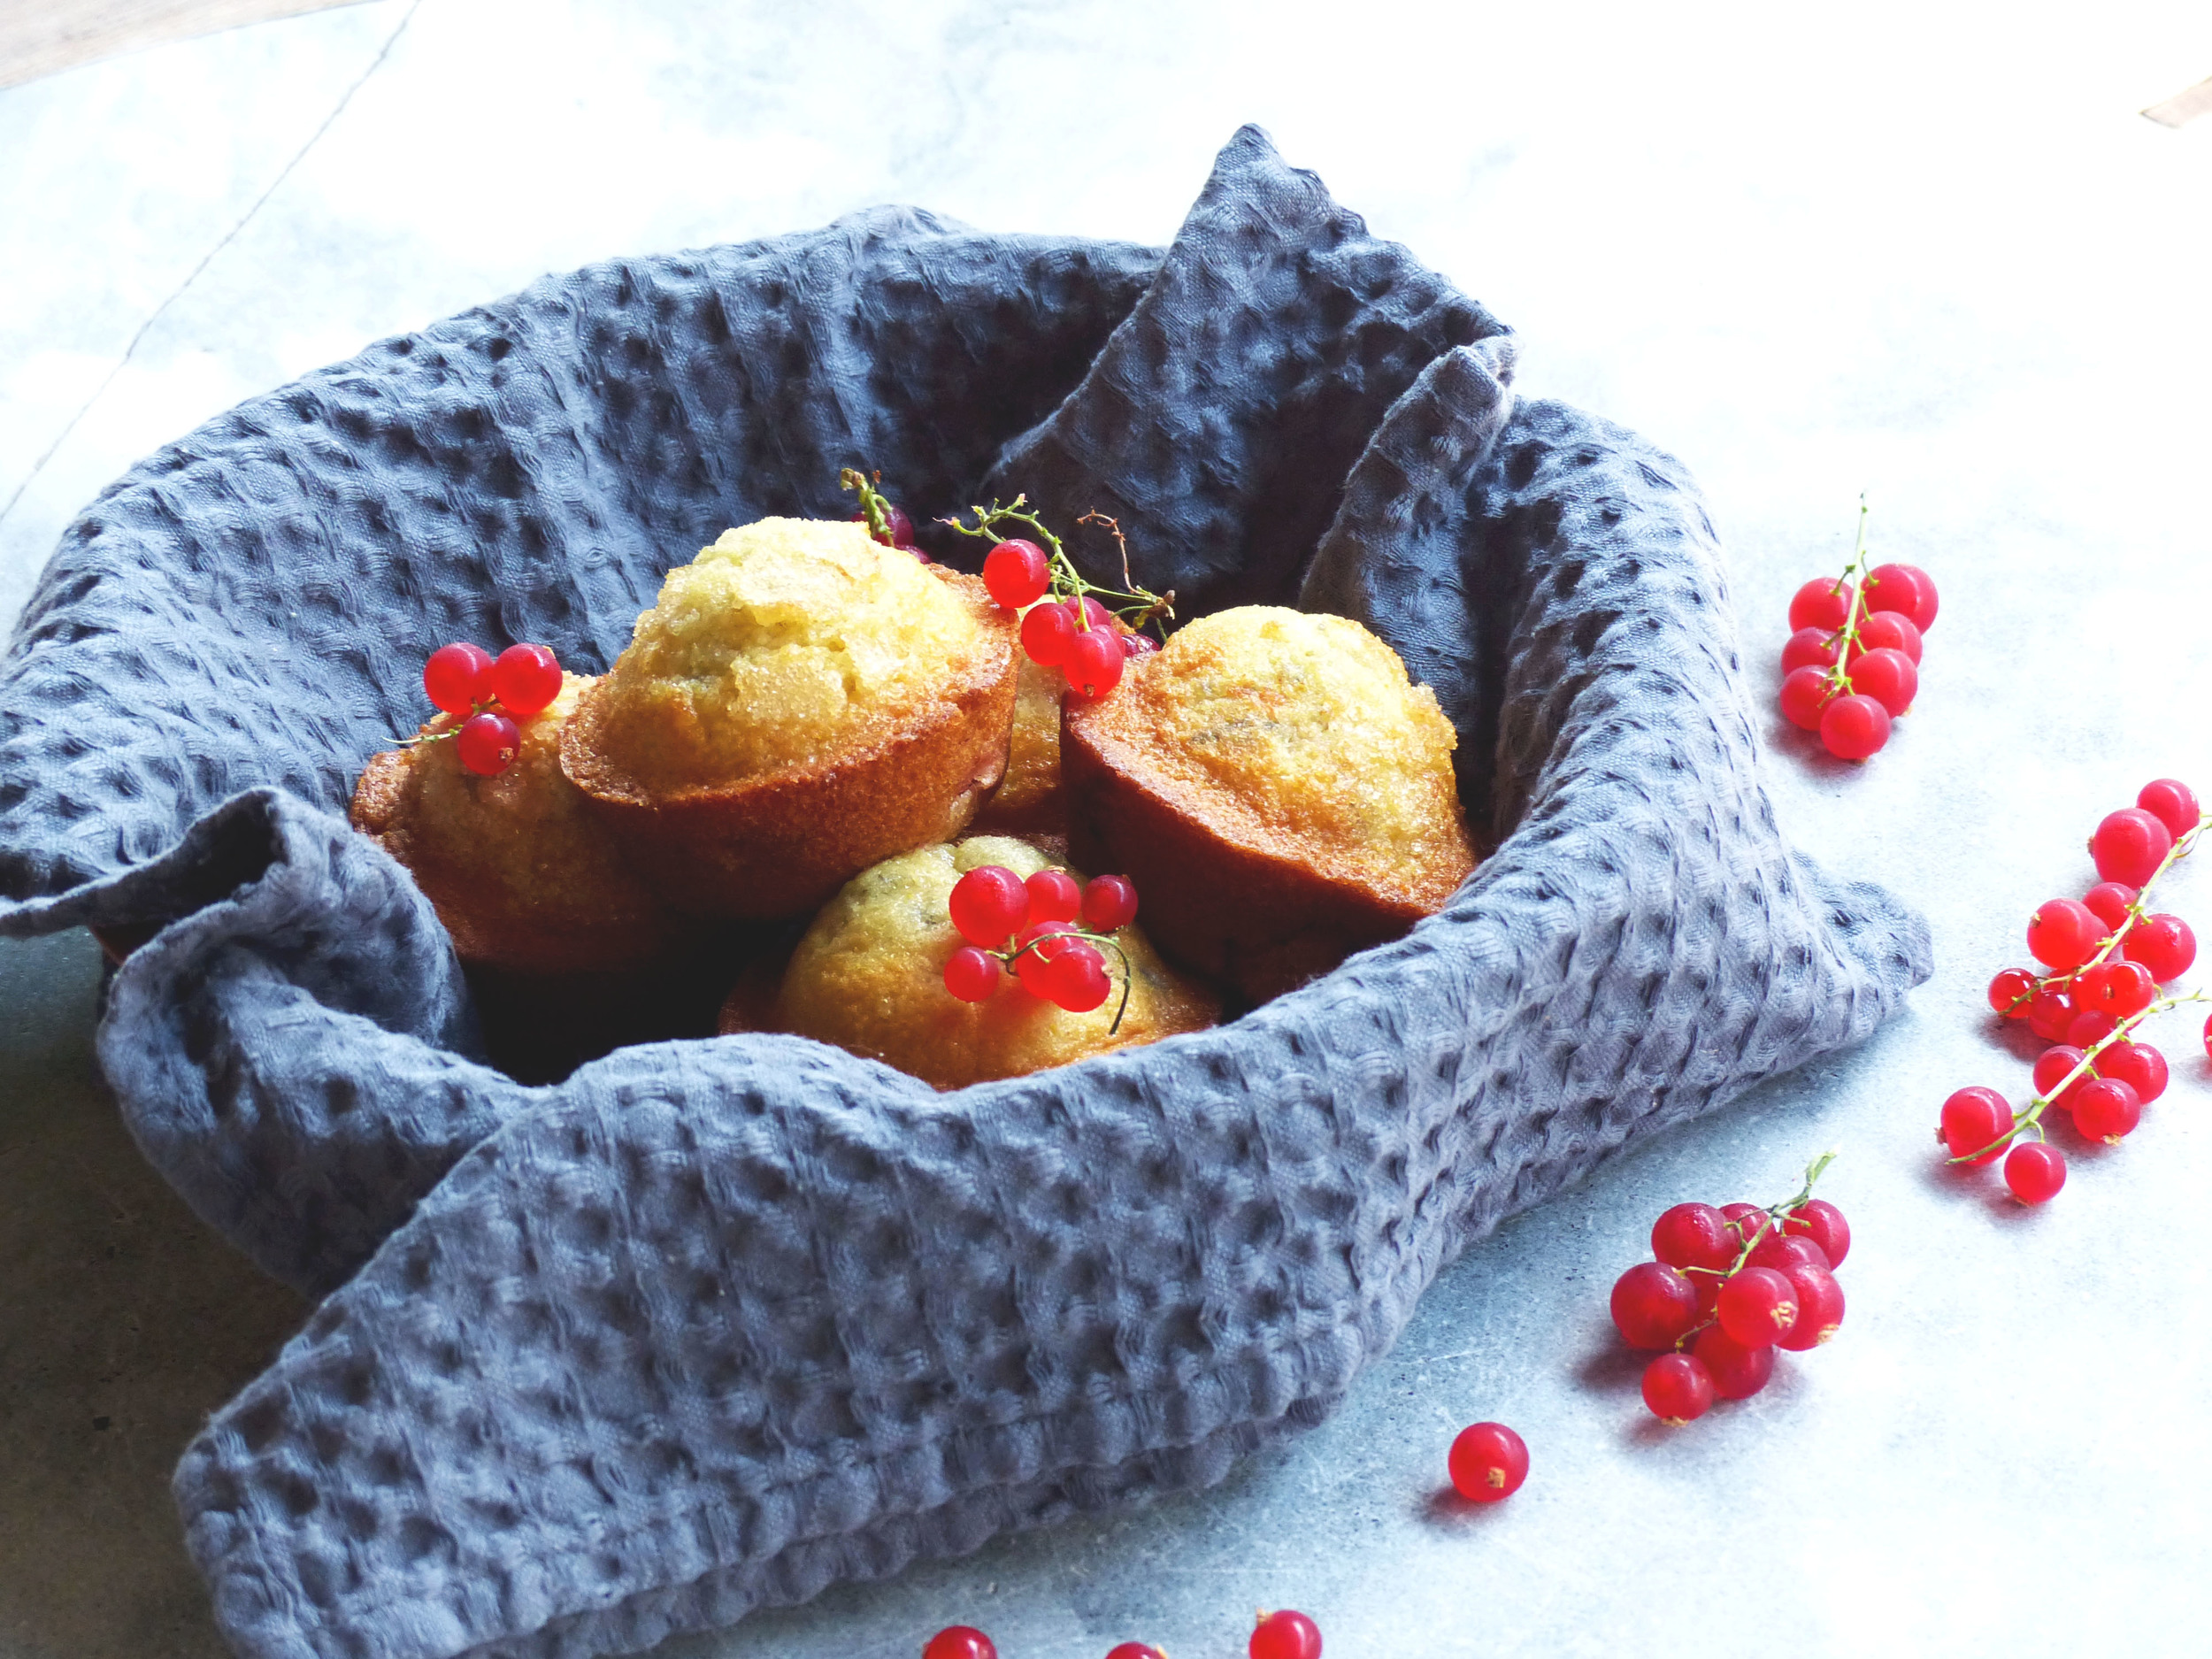 the red currants can be too sour if just eat them alone but they go really well in muffins.